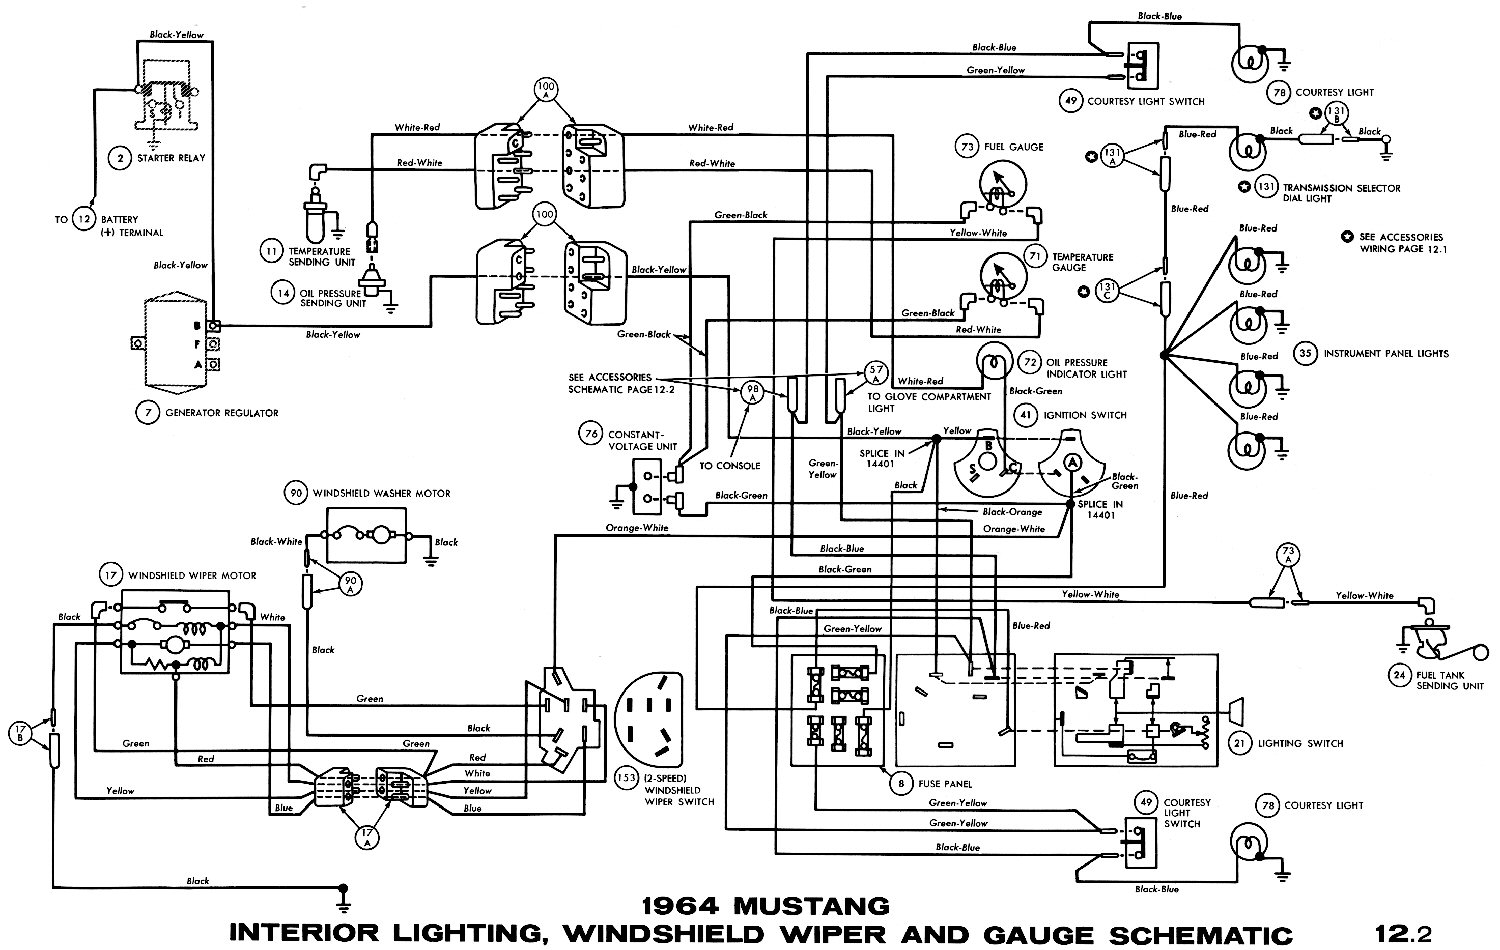 1964k 1964 mustang wiring diagrams average joe restoration 1966 mustang wiring diagrams at n-0.co